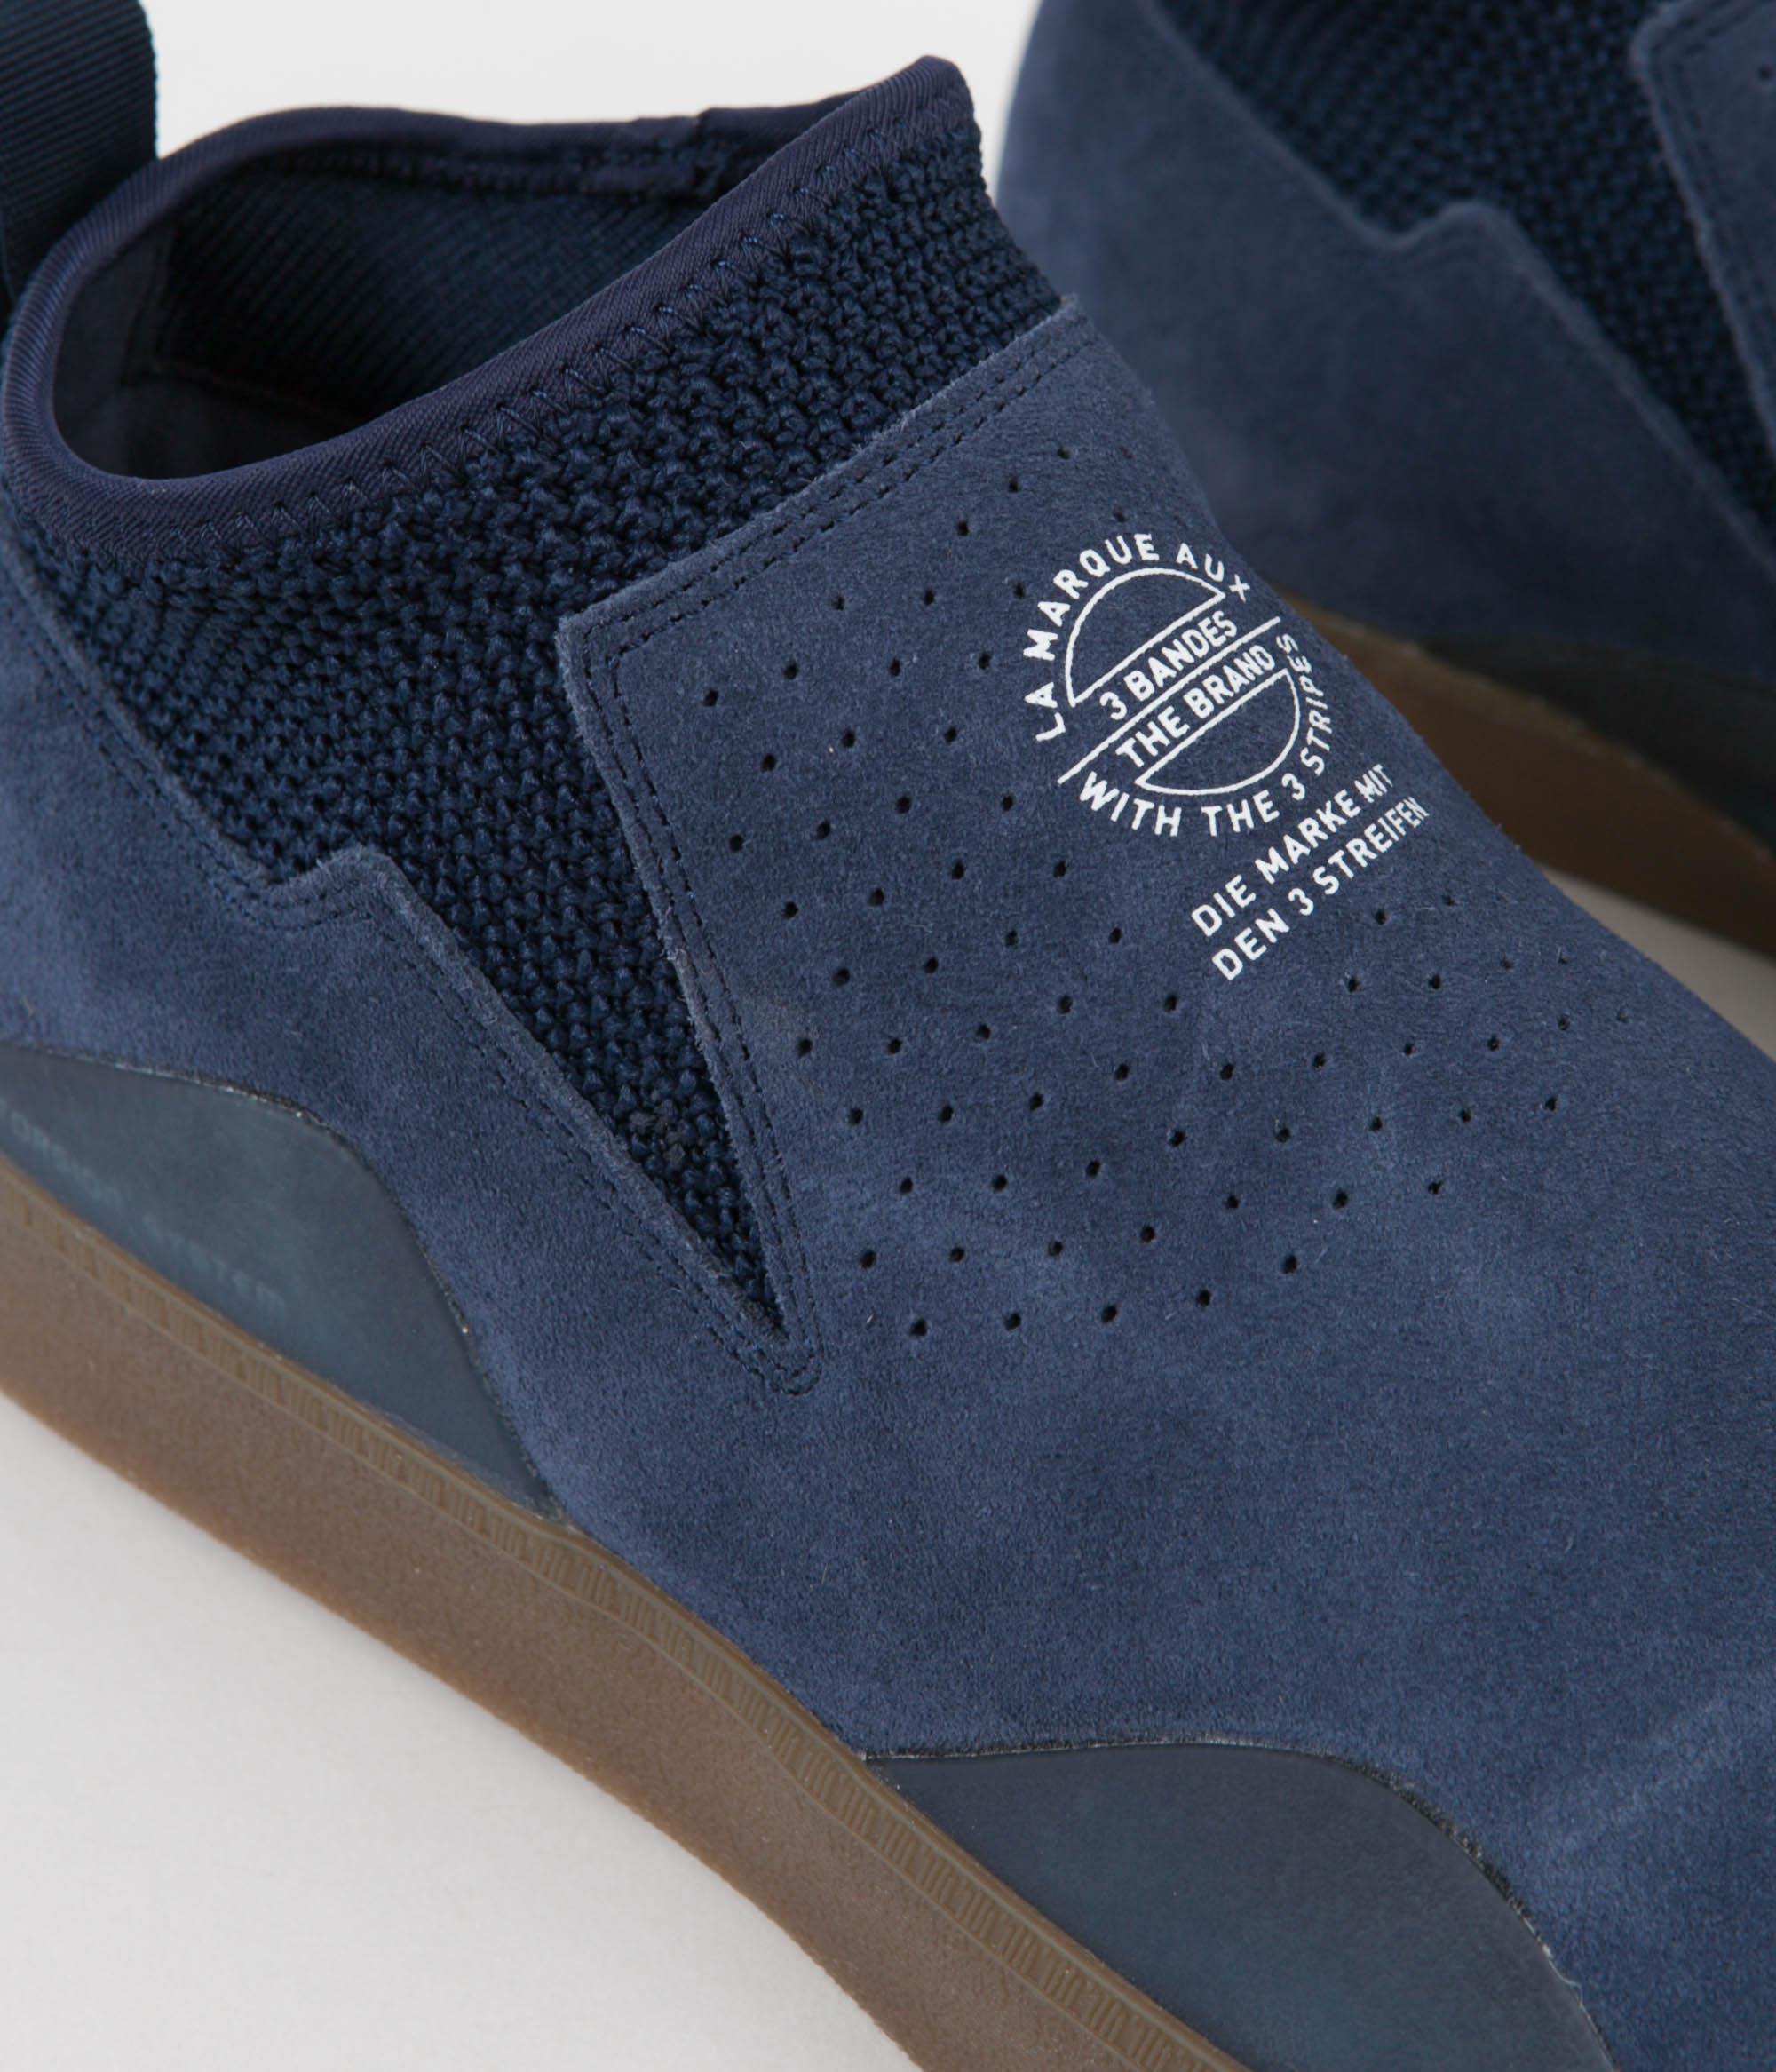 newest 8435d 65ae8 ... Adidas 3ST.002 Shoes - Collegiate Navy  White  Gum ...